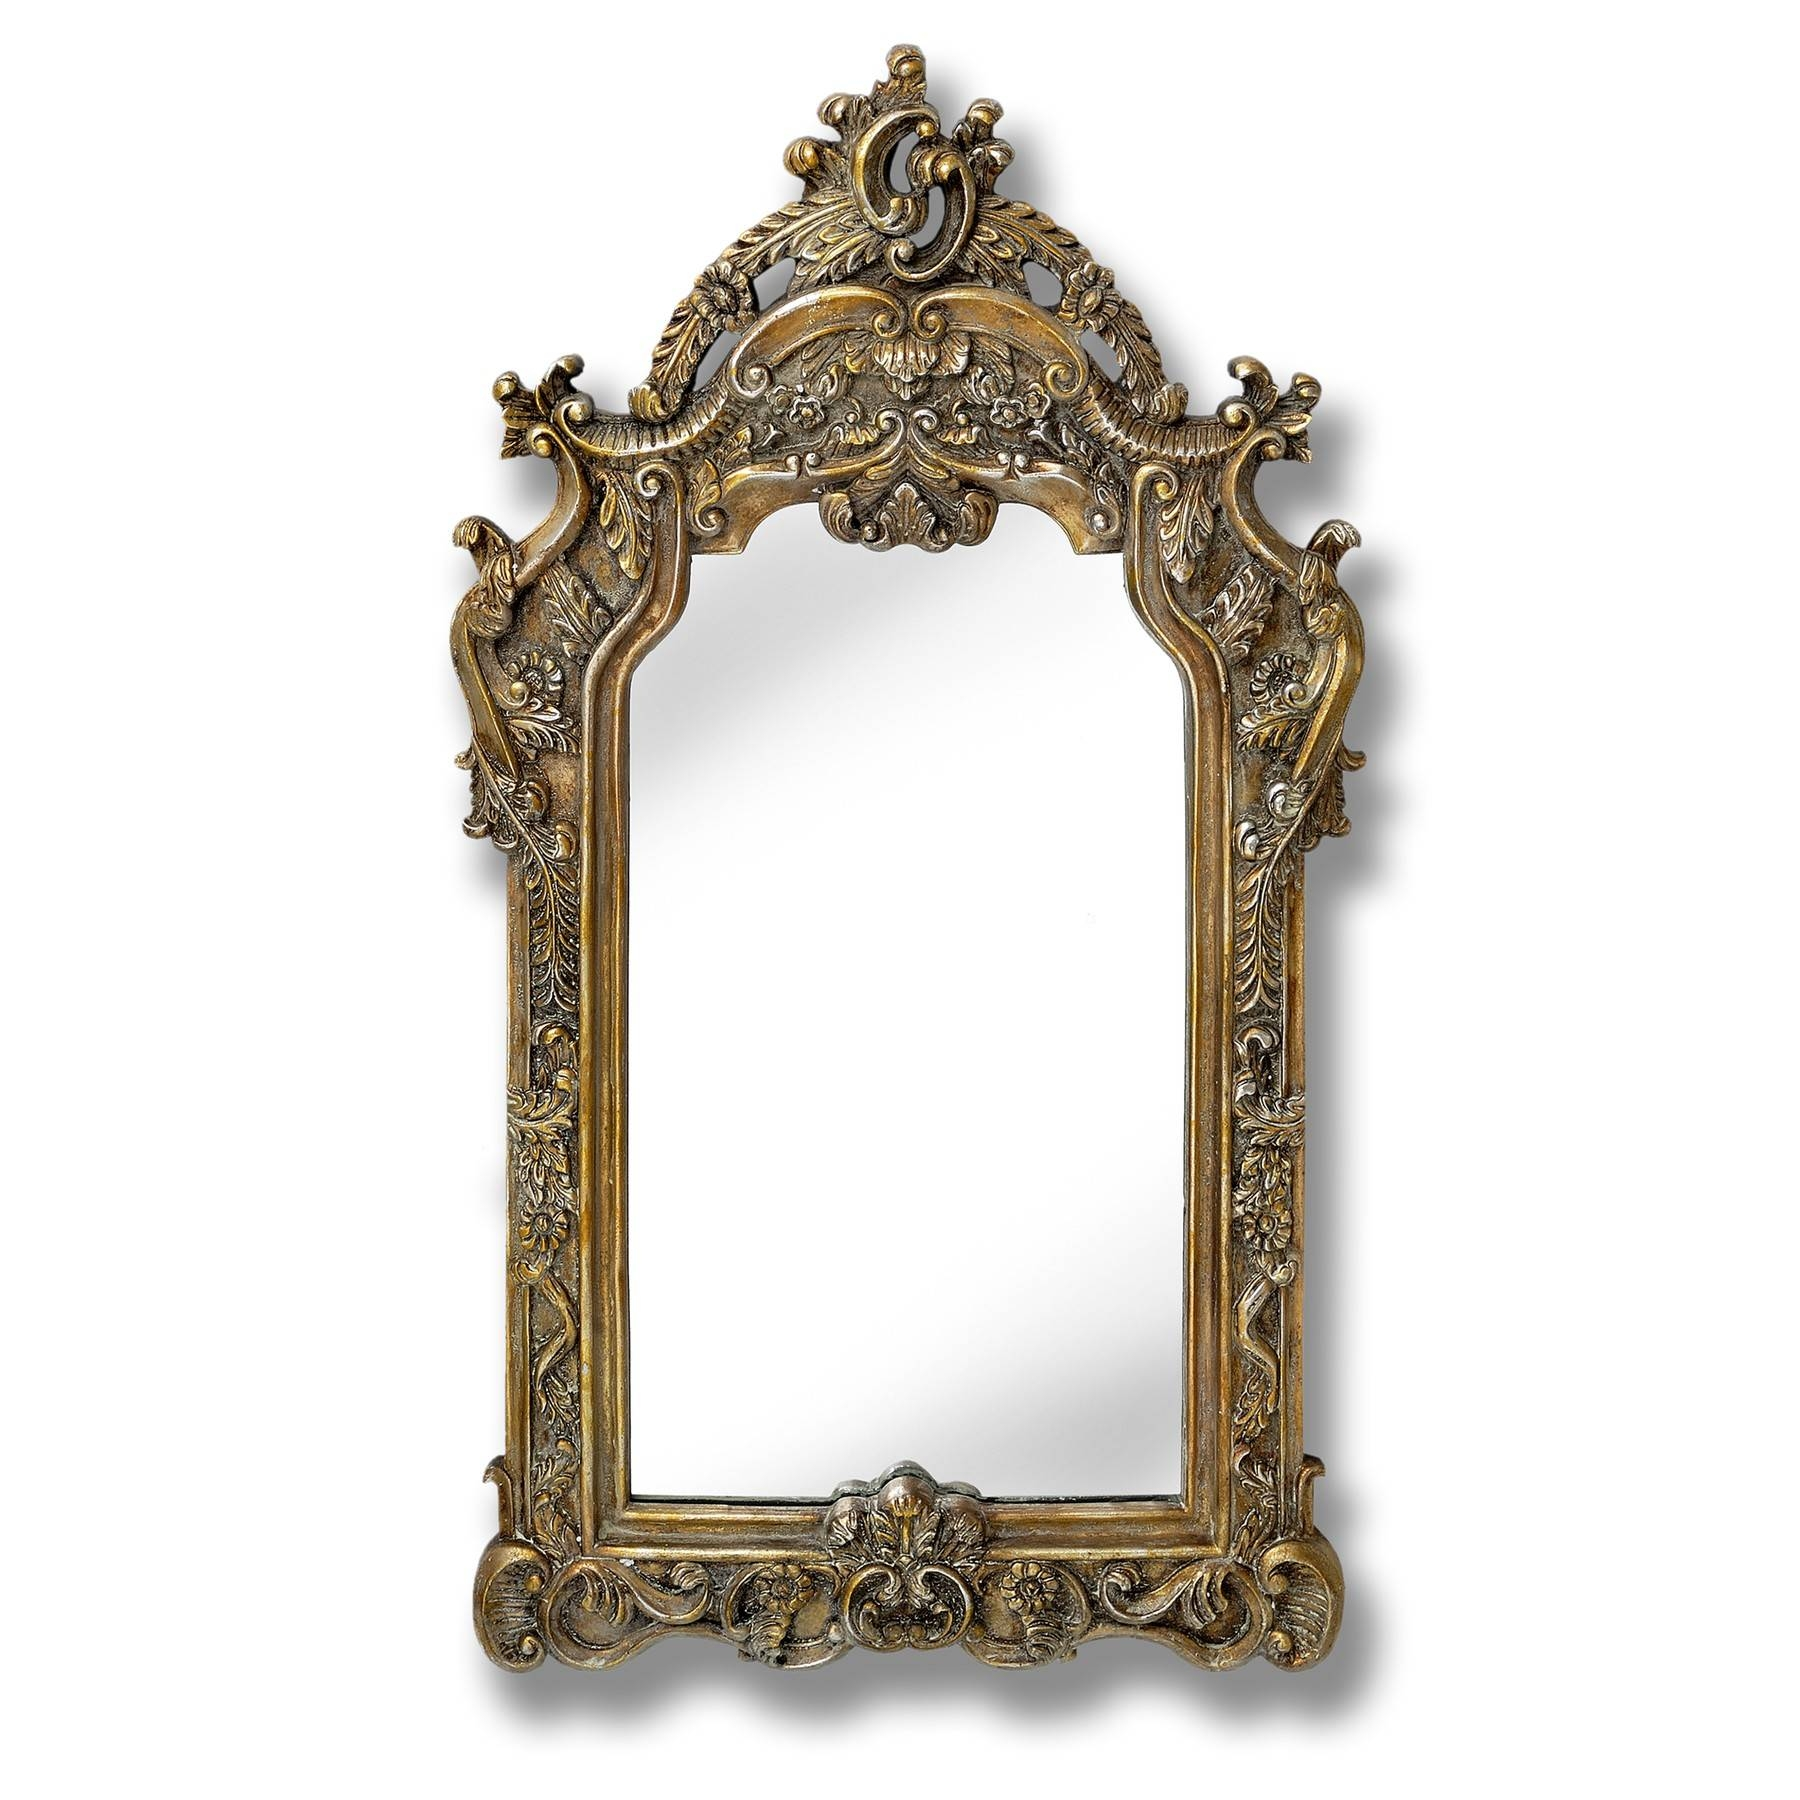 Home Decor: Finding Indispensable Criteria For Antique Mirrors Pertaining To Antique Mirrors (View 3 of 25)